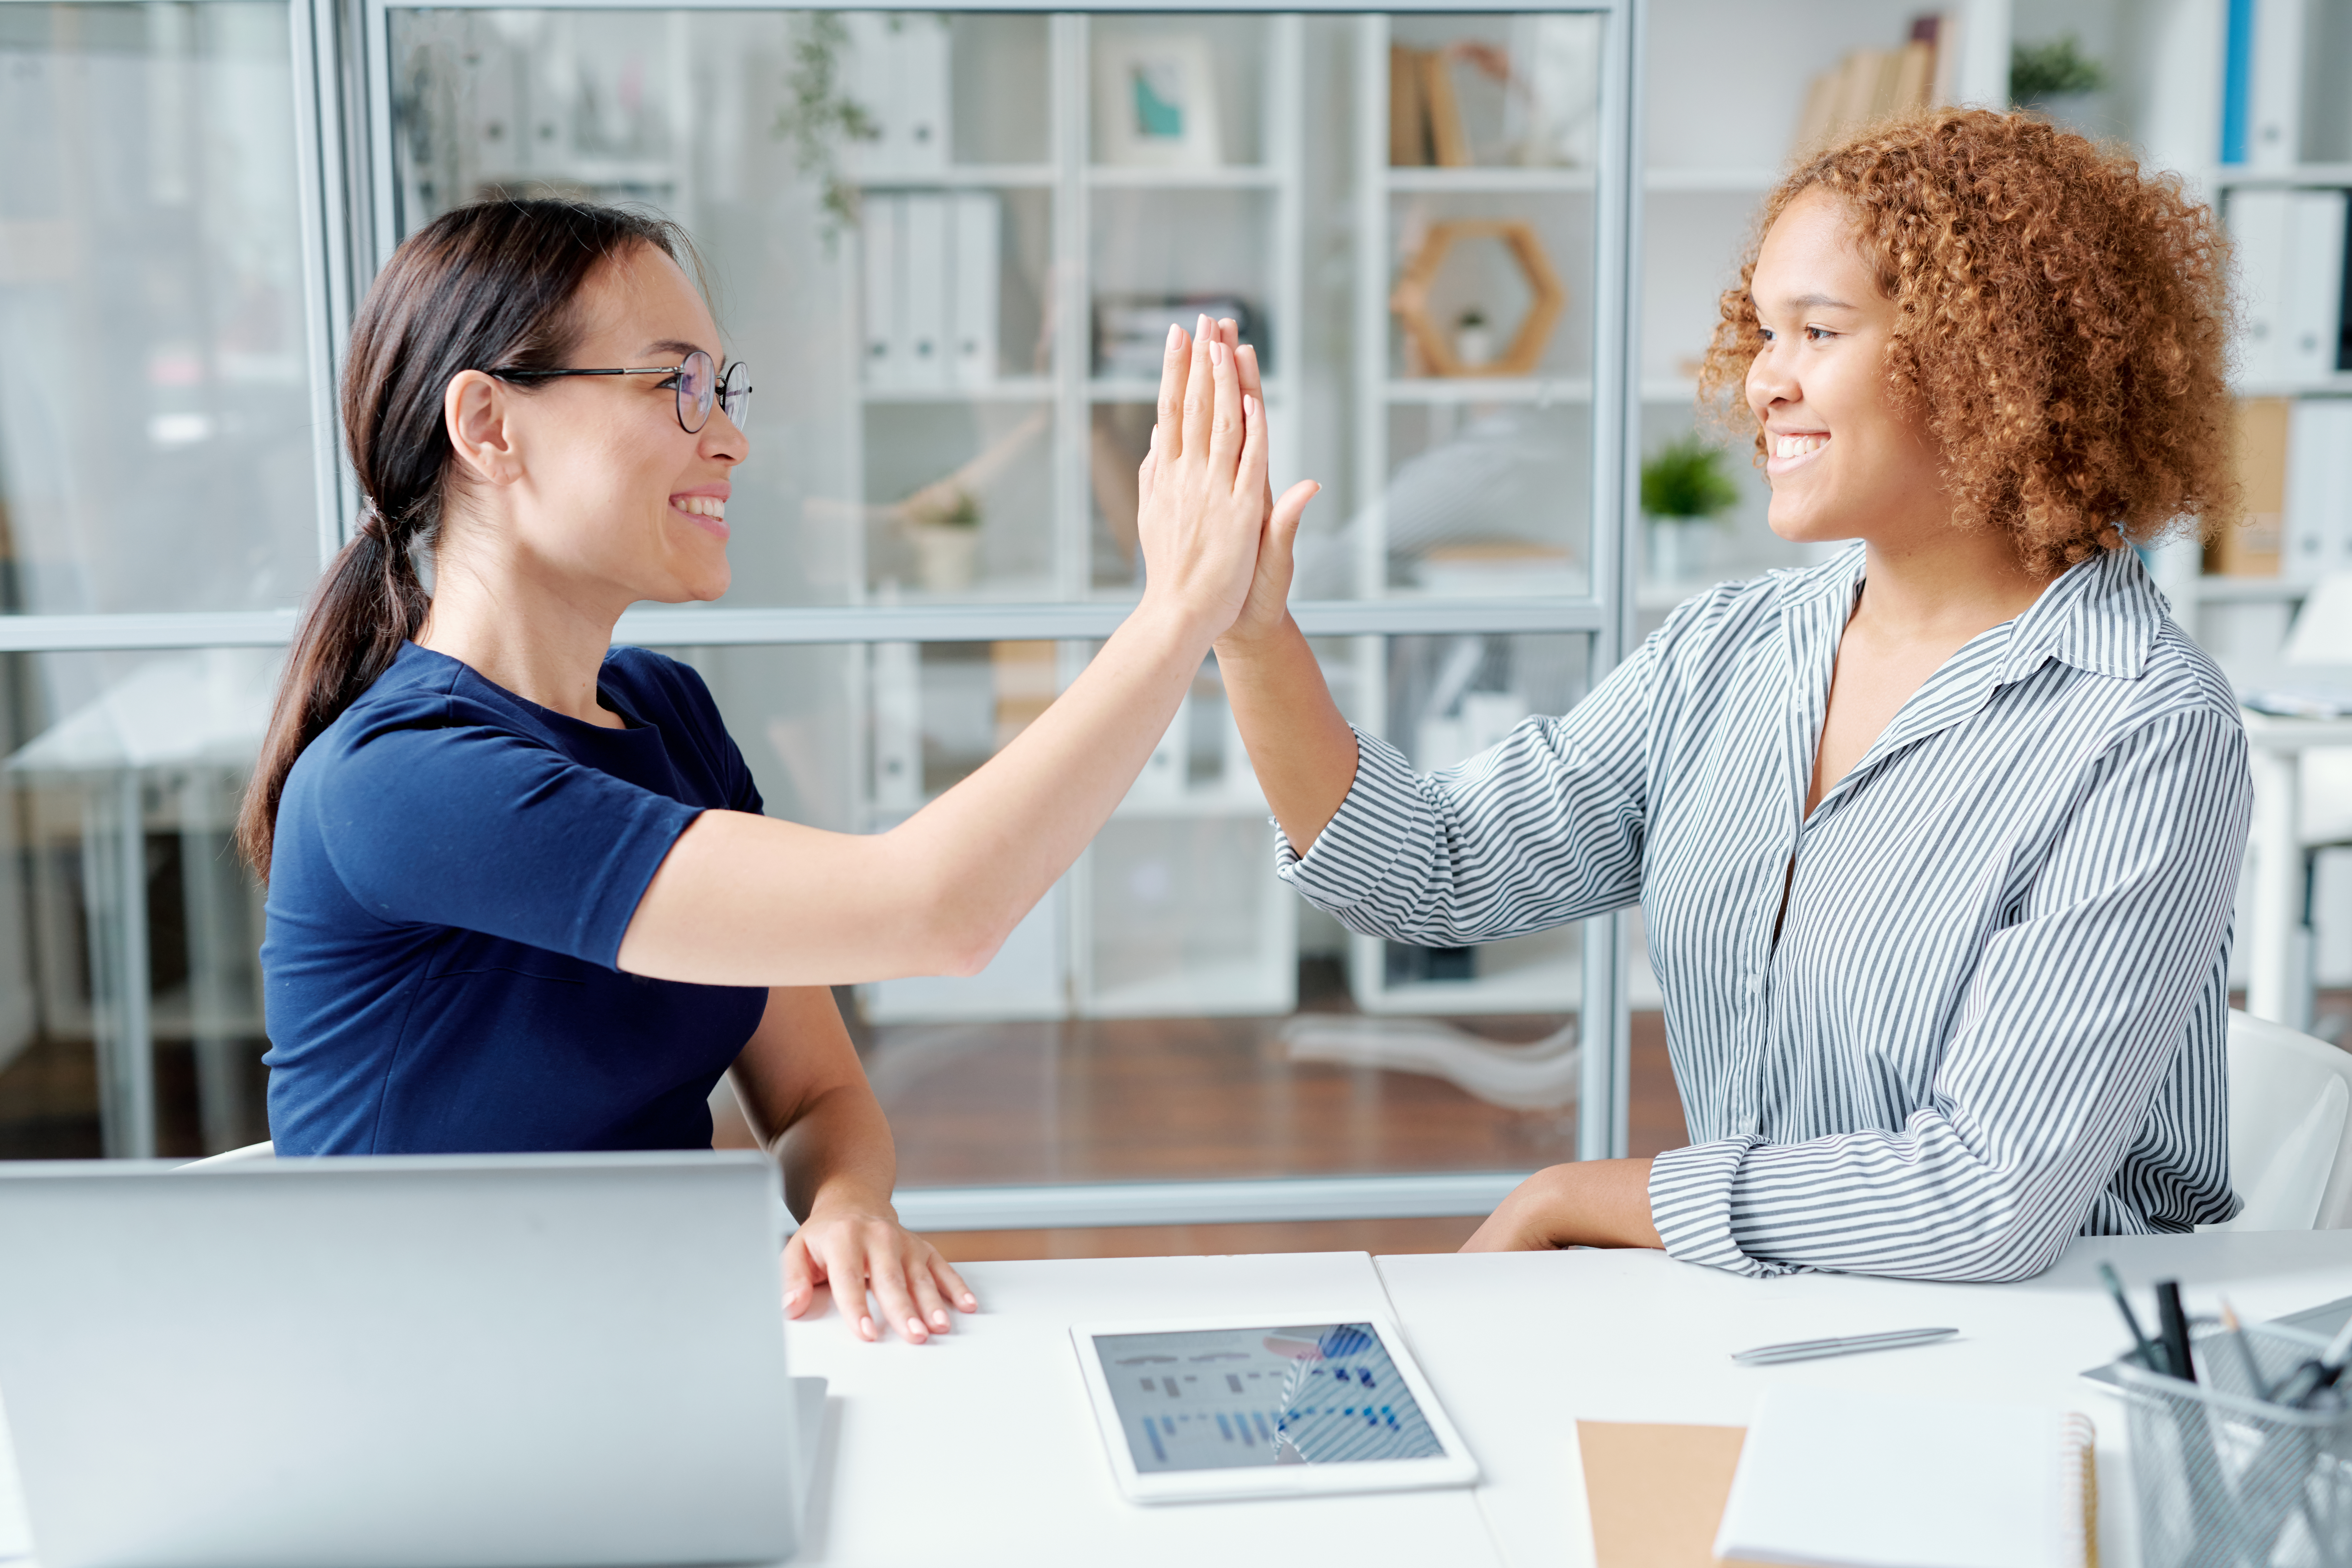 bigstock-Two-young-multicultural-office-321145285